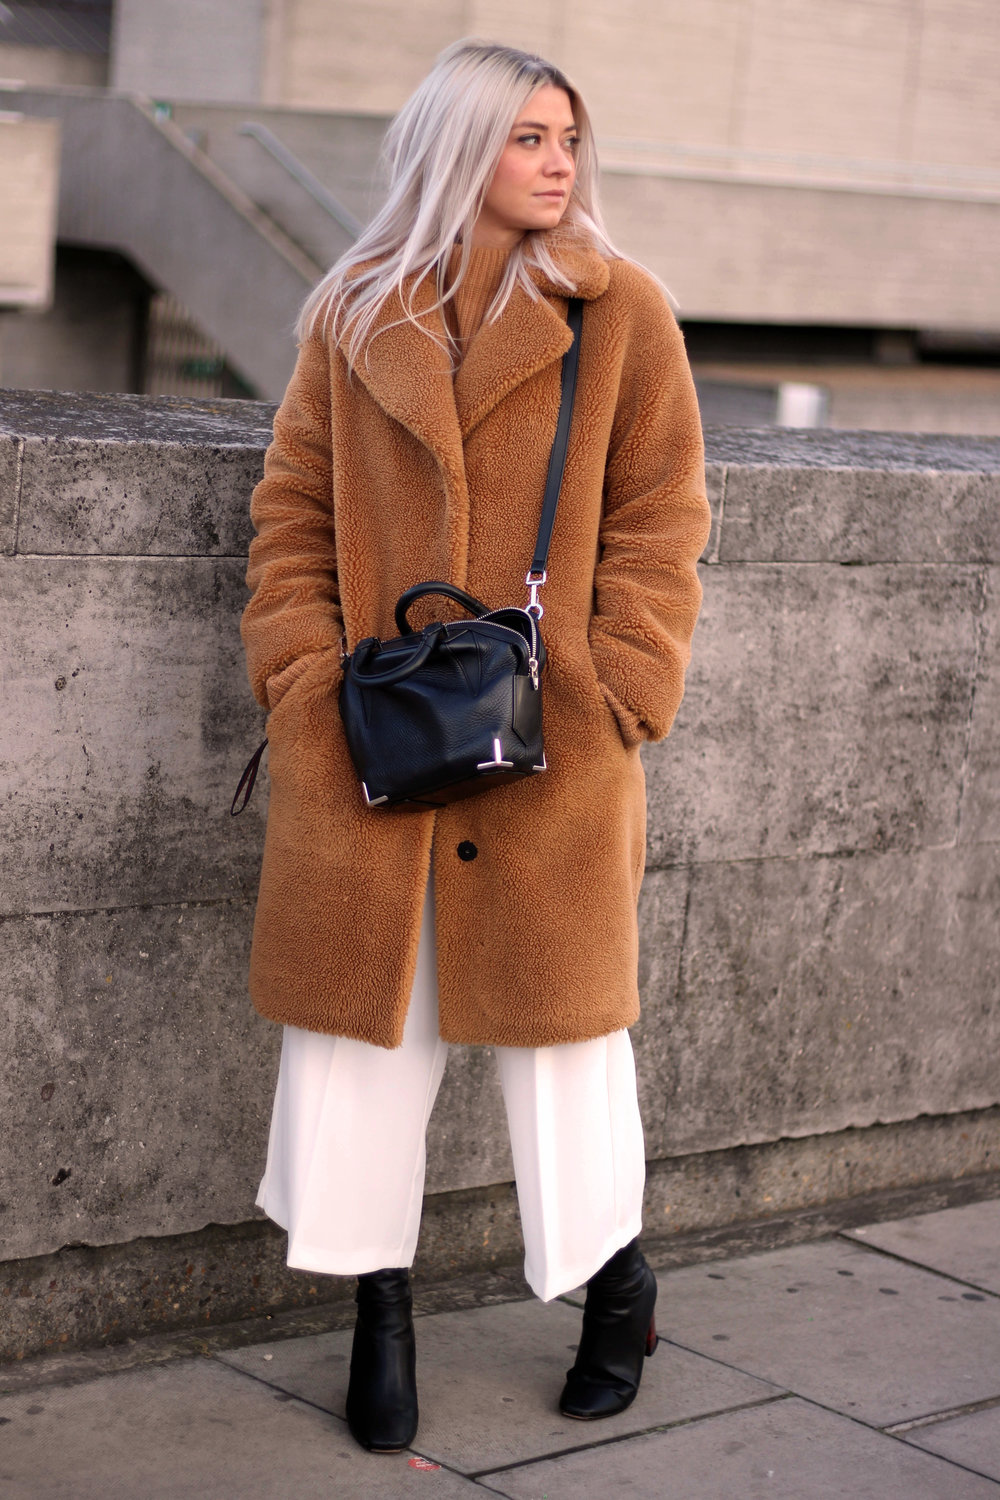 CAMEL TEDDY BEAR ICON COAT, TOPSHOP WHITE TROUSERS, NORTHERN MAGPIE, JOEY TAYLOR 7